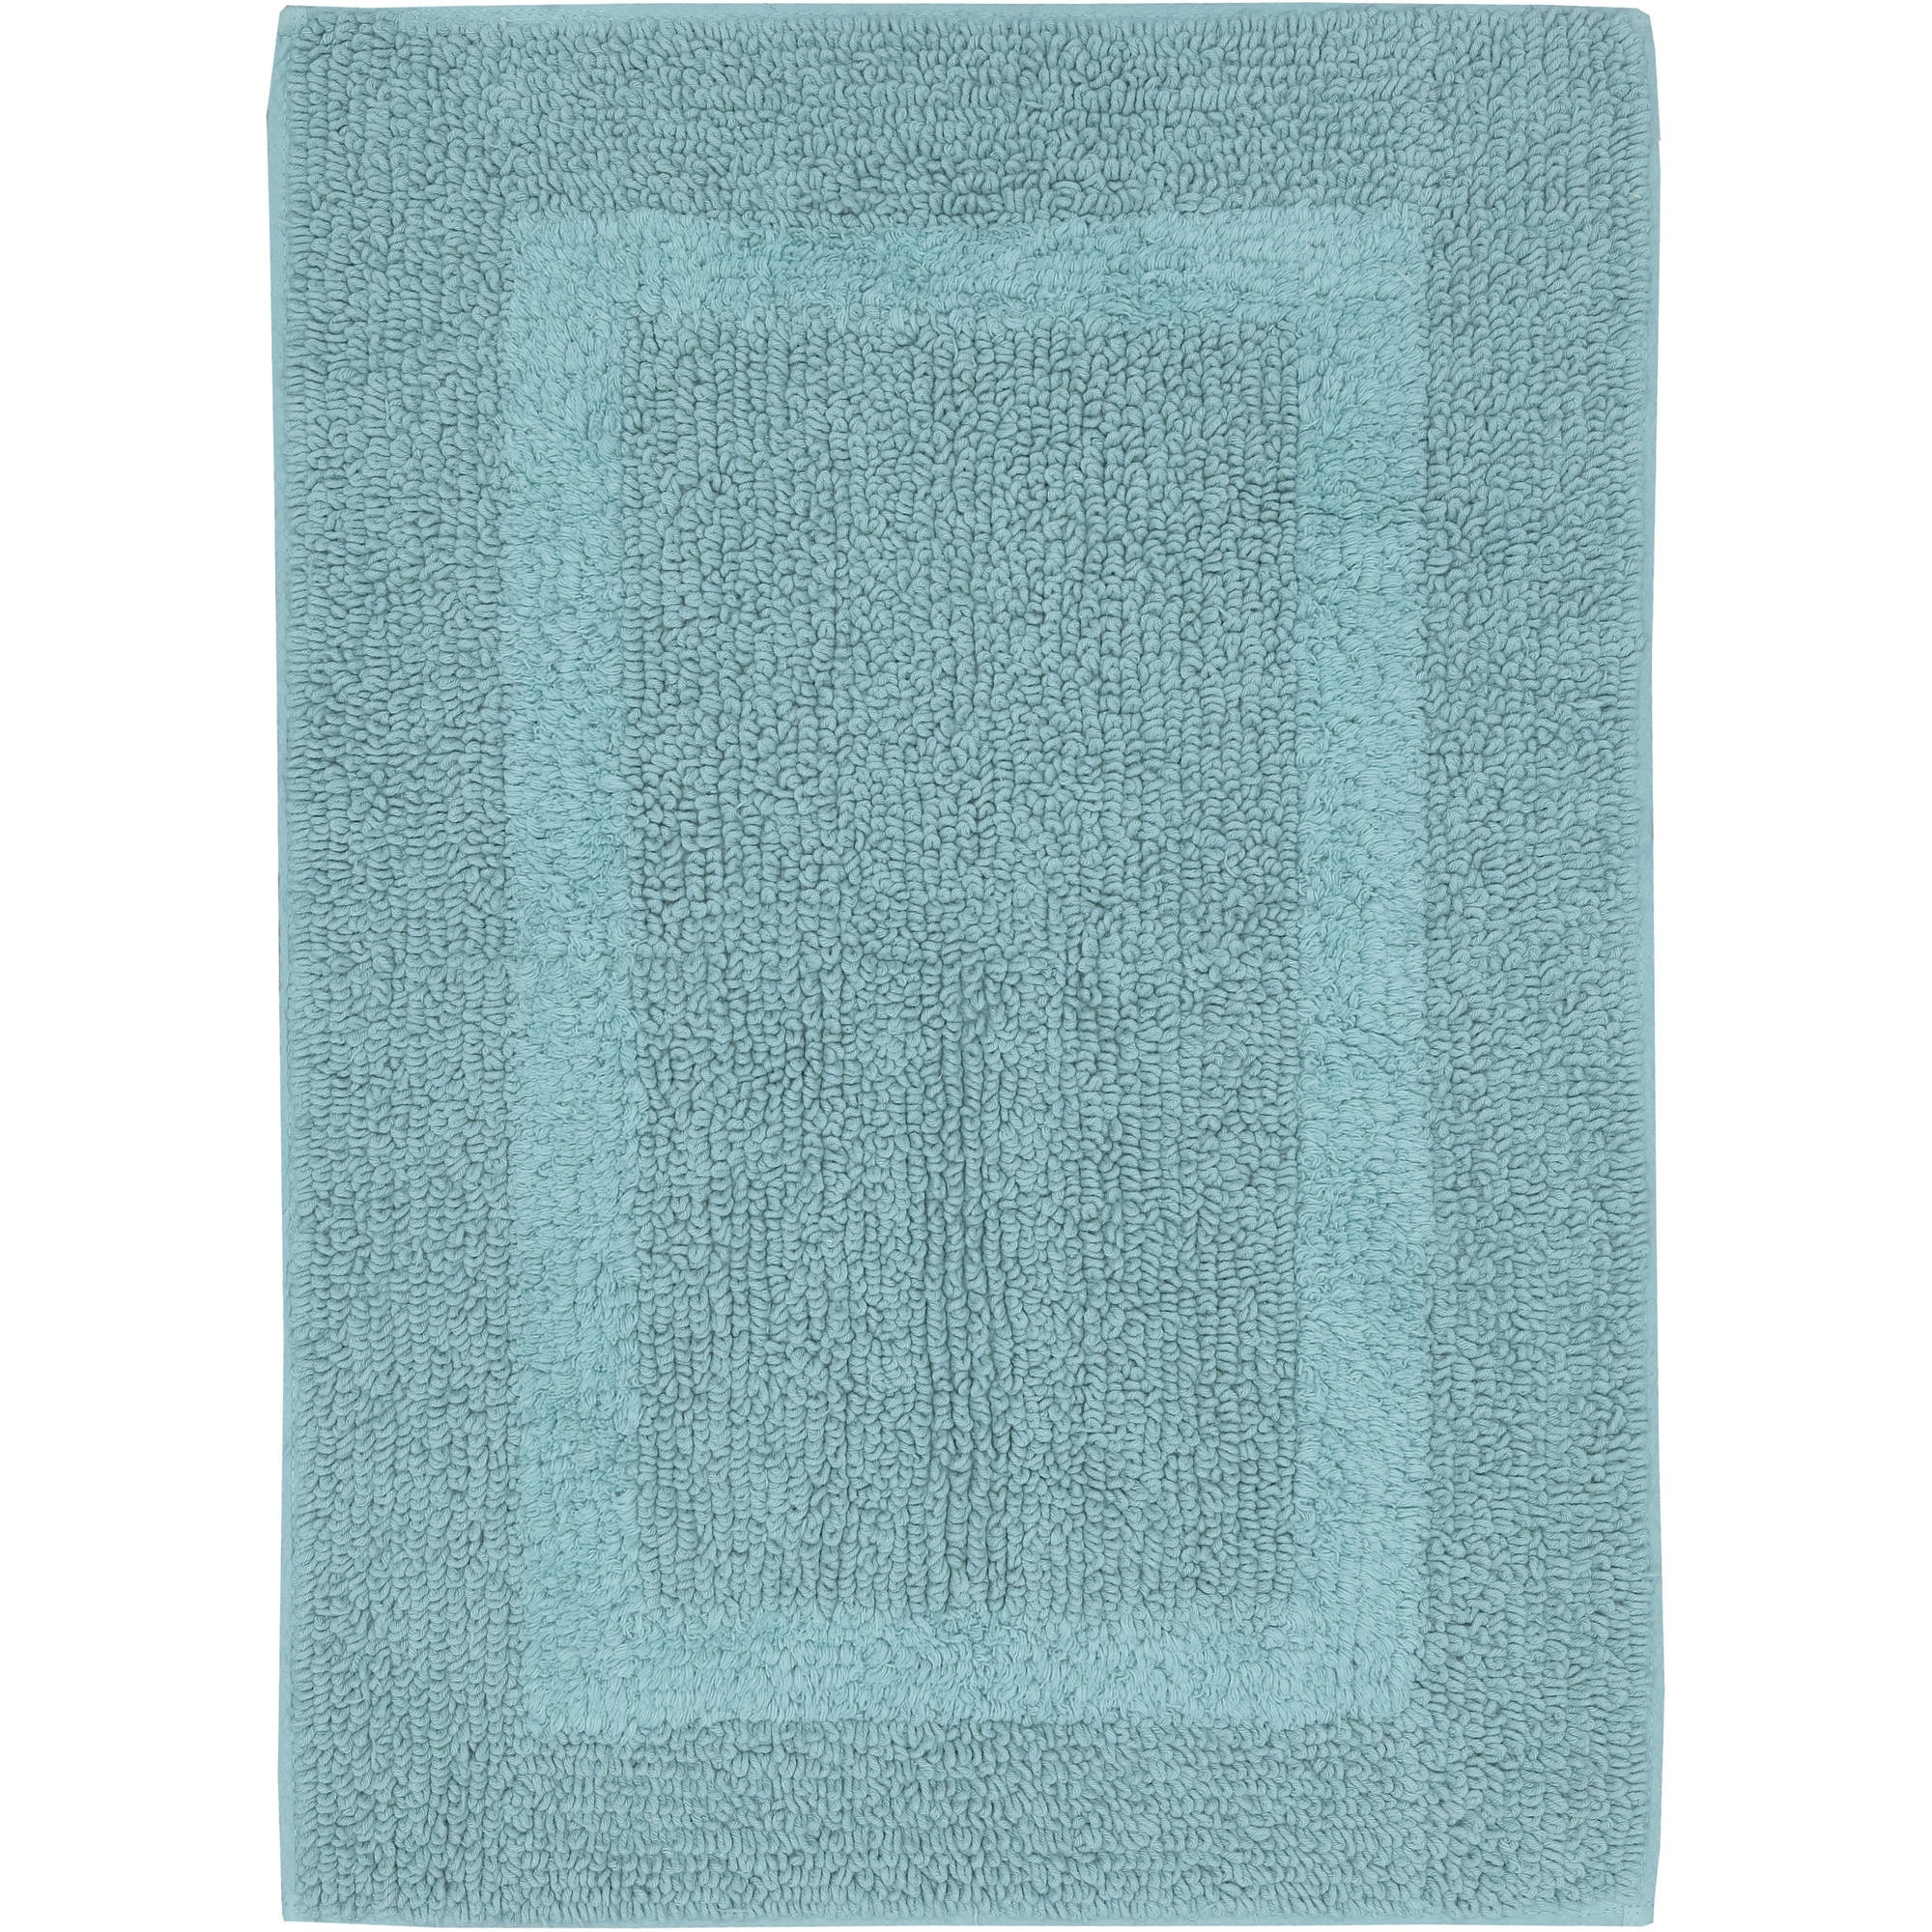 Permalink to Turquoise And White Bathroom Rugs